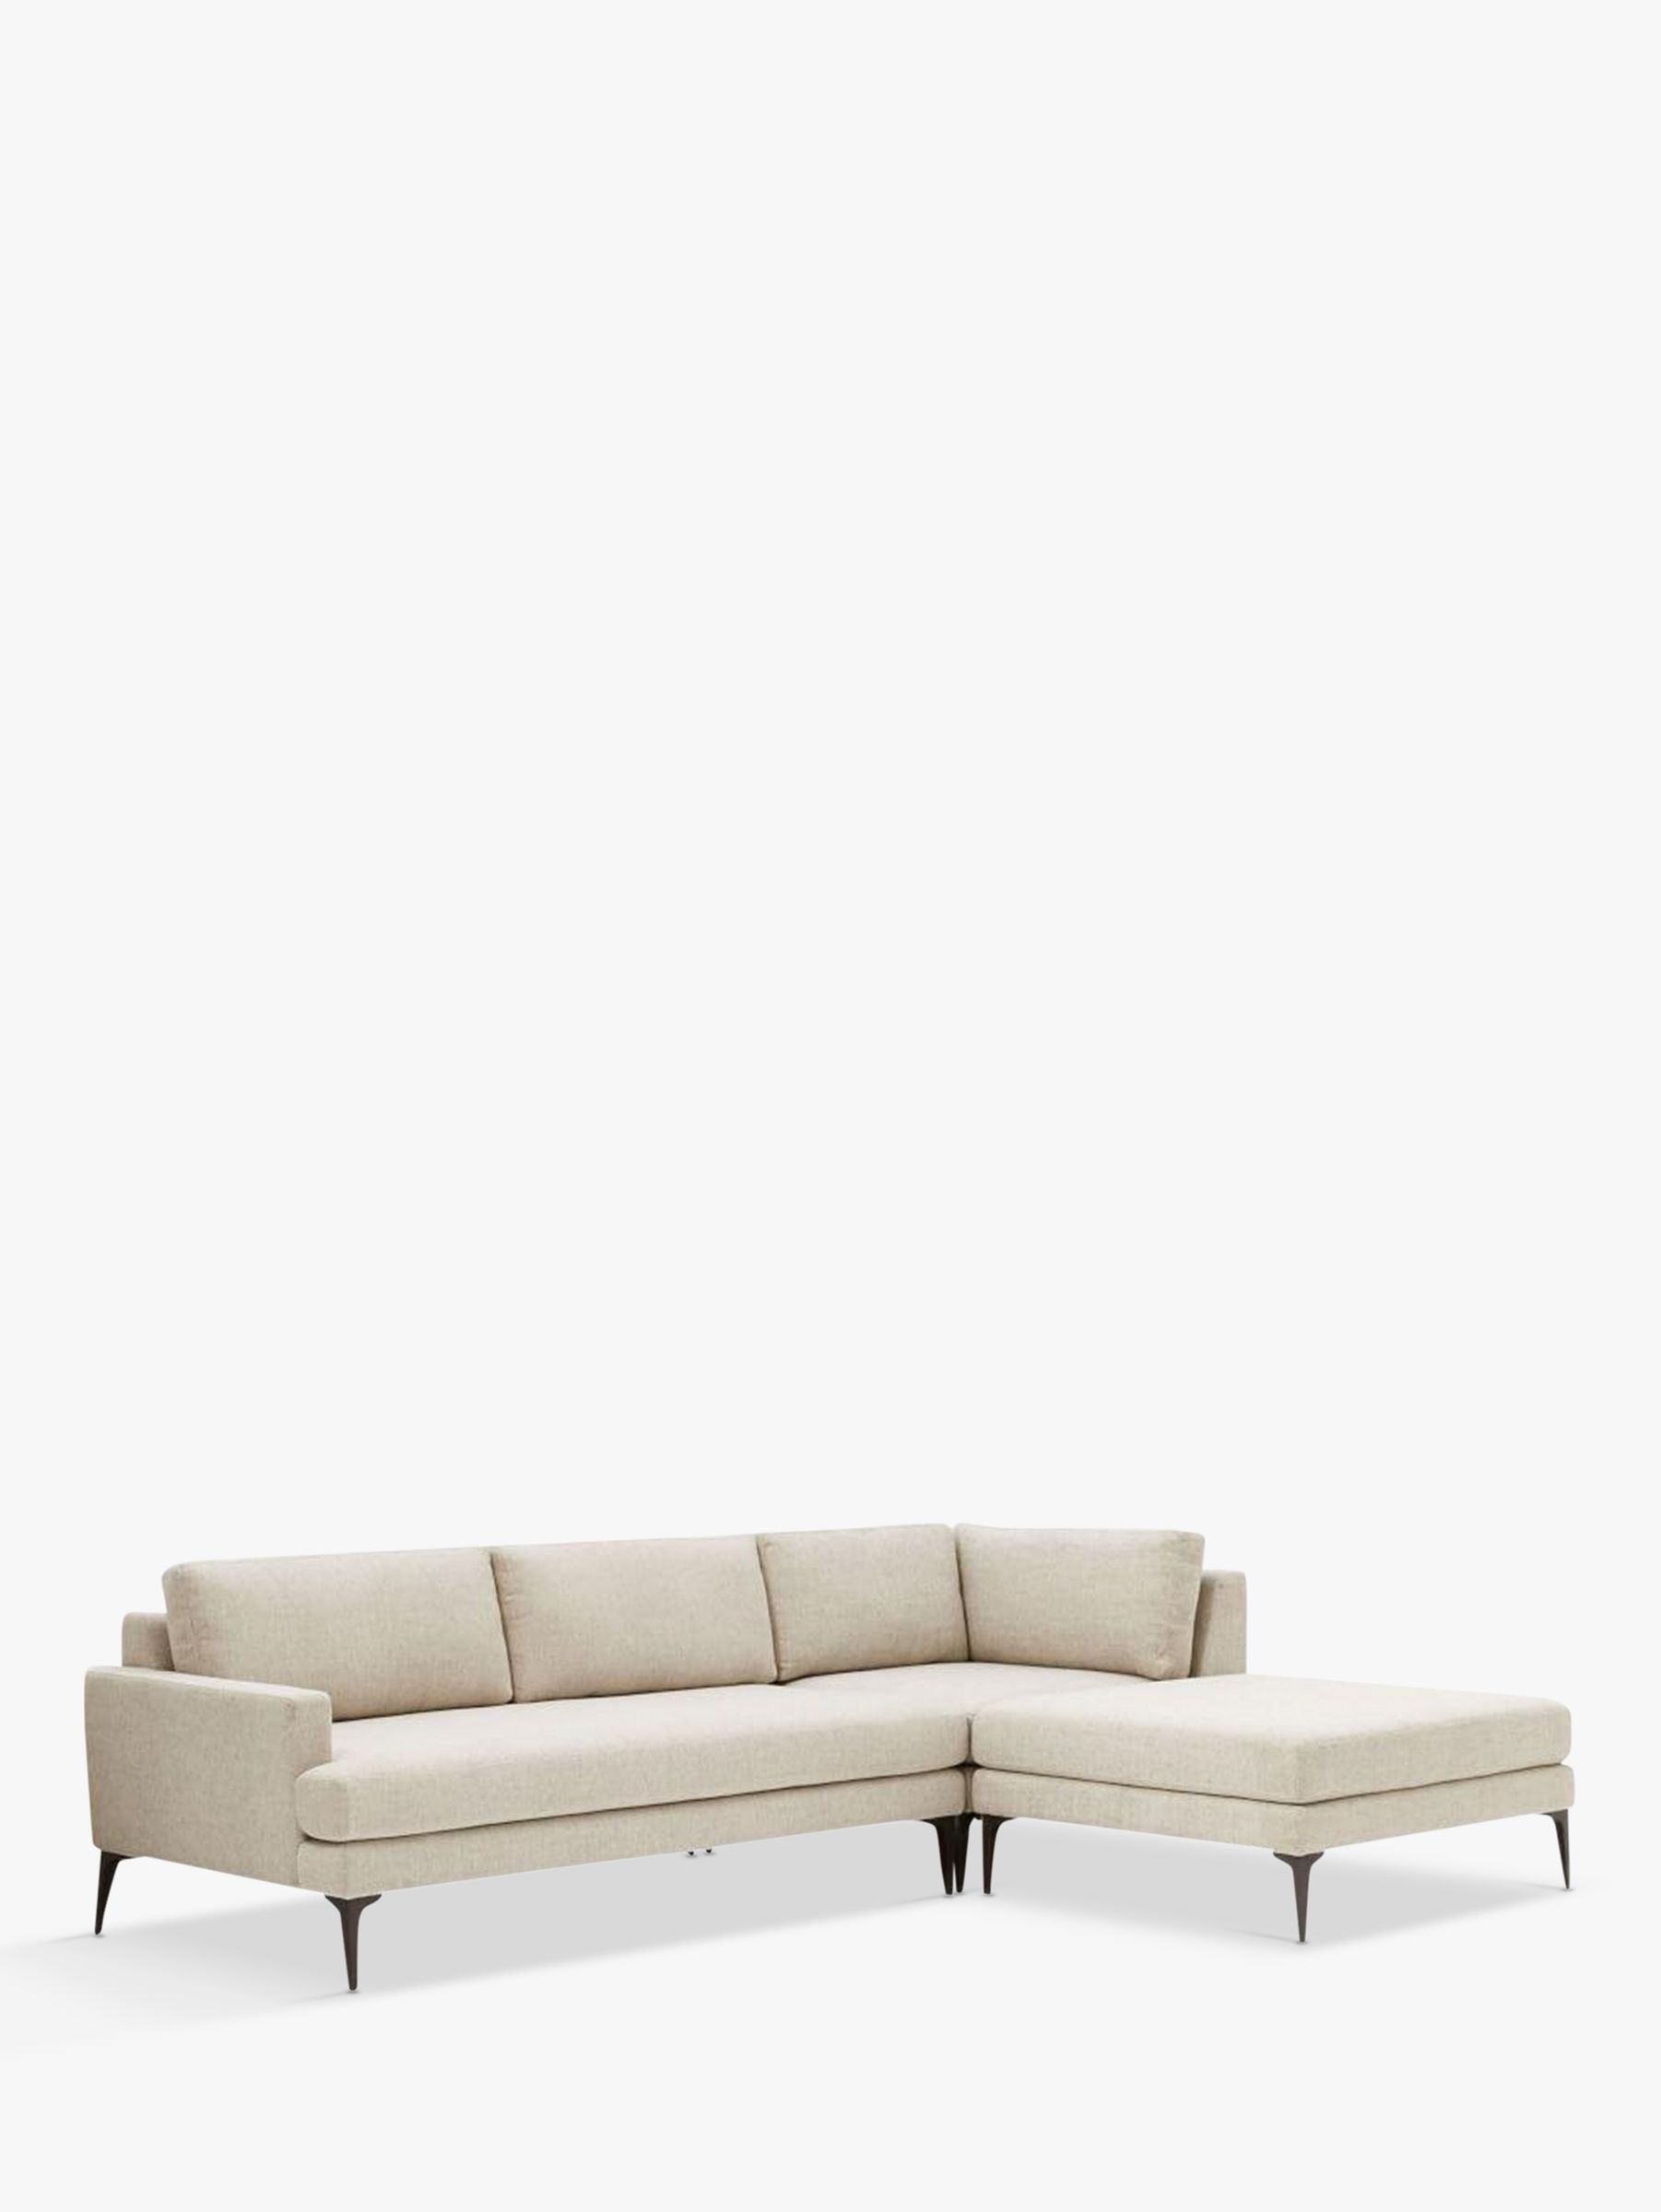 Buy west elm Andes Large 3 Seater RHF Sectional Sofa TwillStone